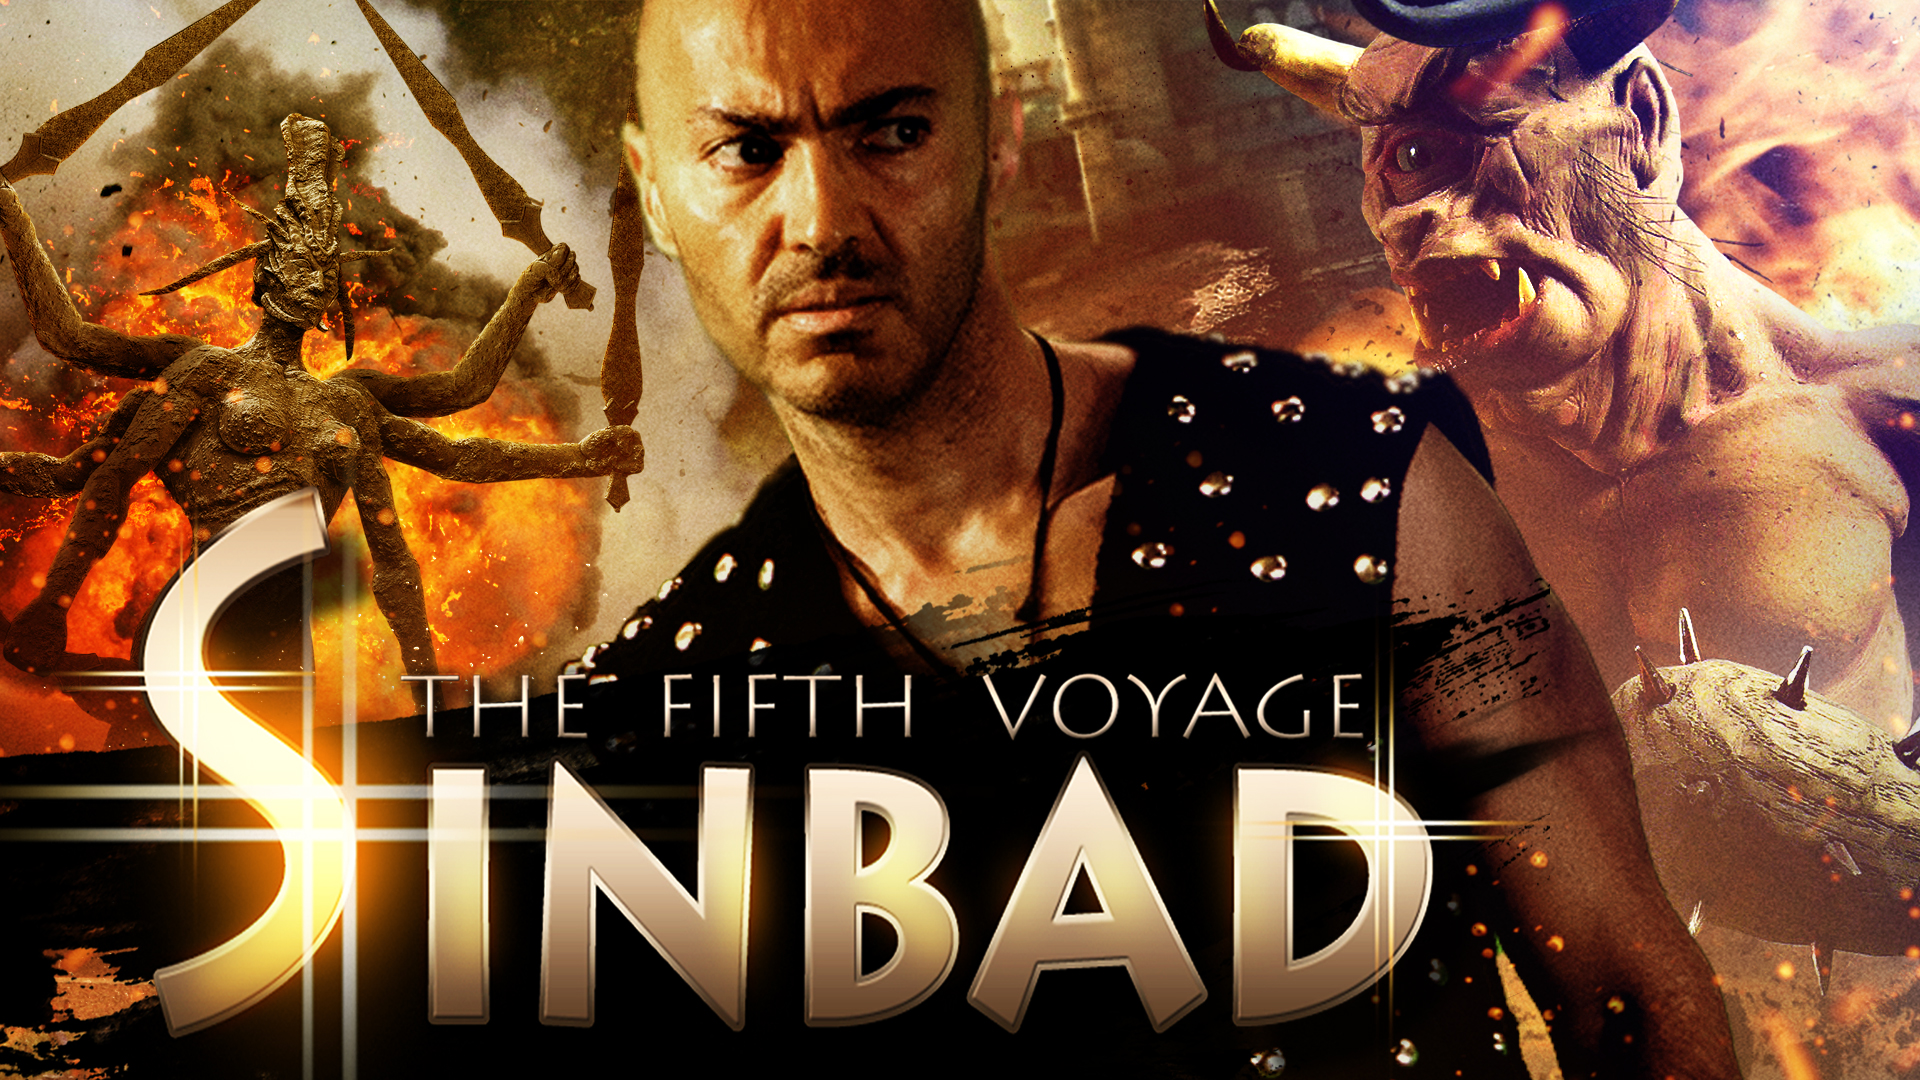 Sinbad: The Fifth Voyage - Theatrical Cut